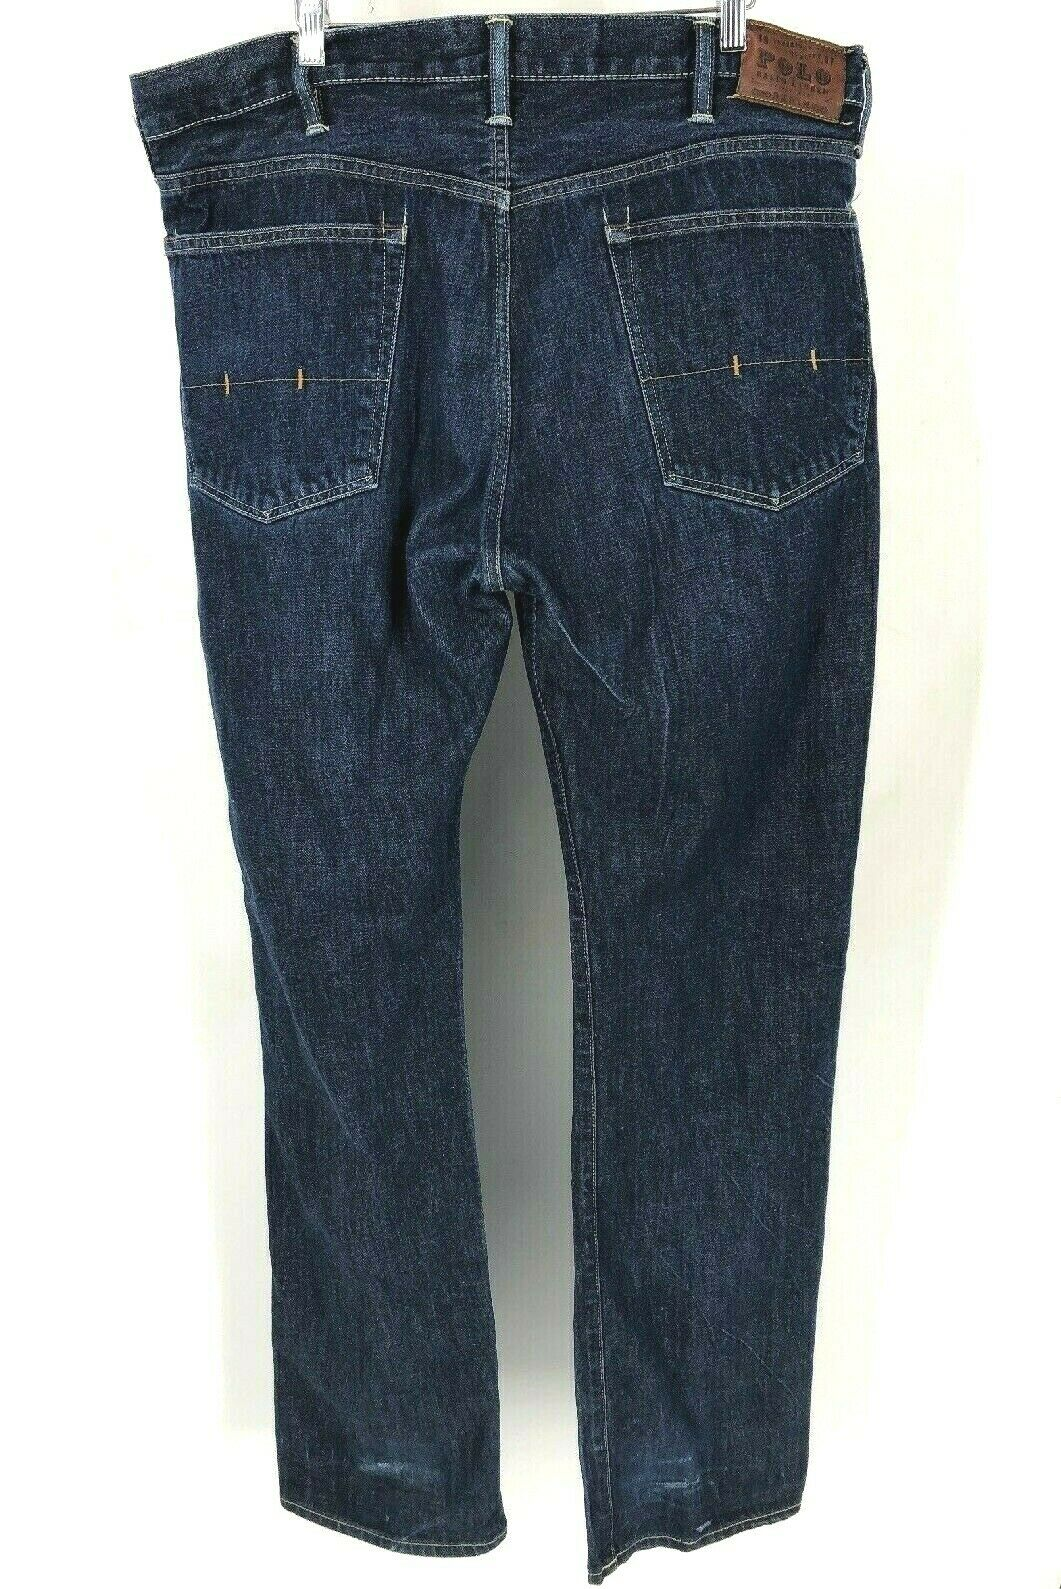 Polo ralph Lauren Mens Jeans 38 Tall Straight Leg Zipper Fly Riverside Wash (F9)